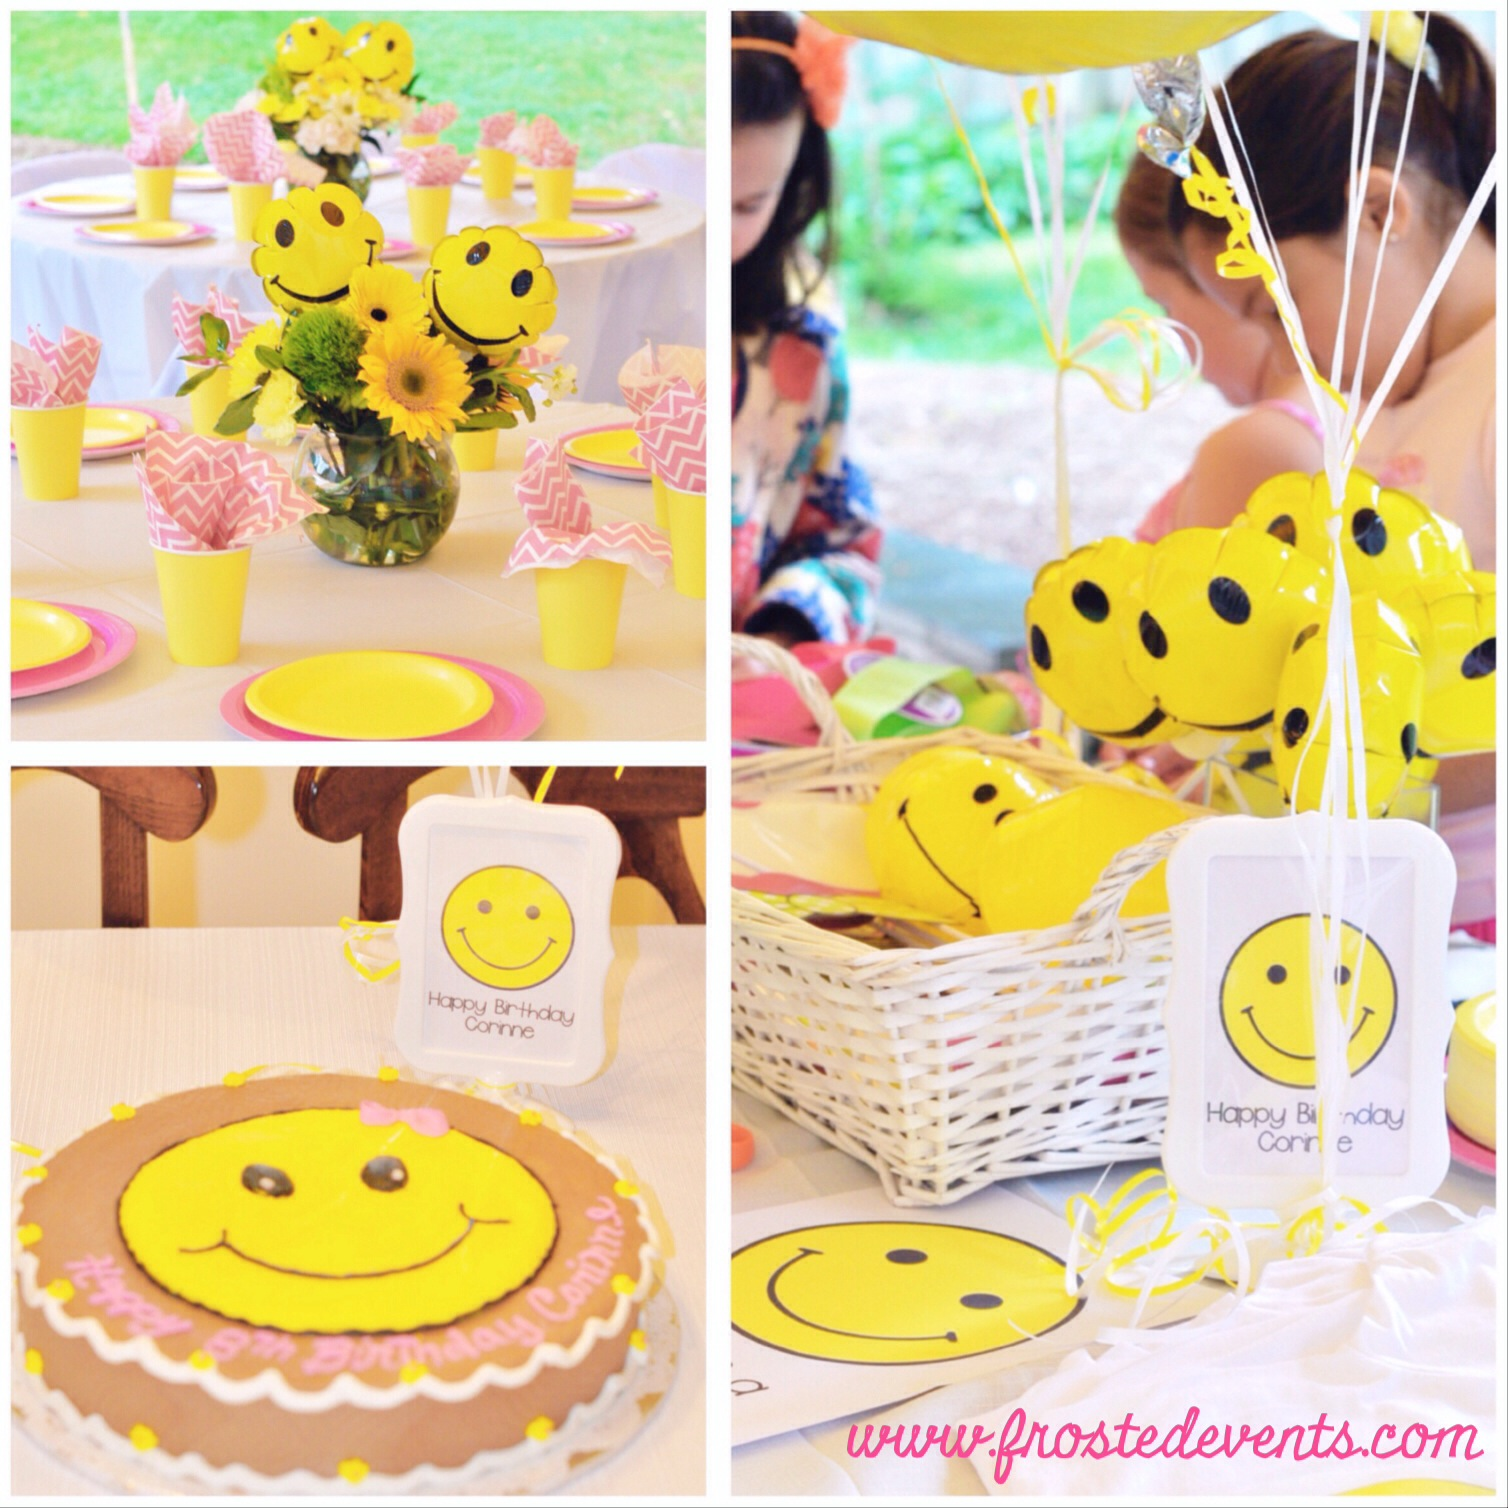 Happy Face Smile! Theme Birthday Party- Frosted Events www.frostedevents.com